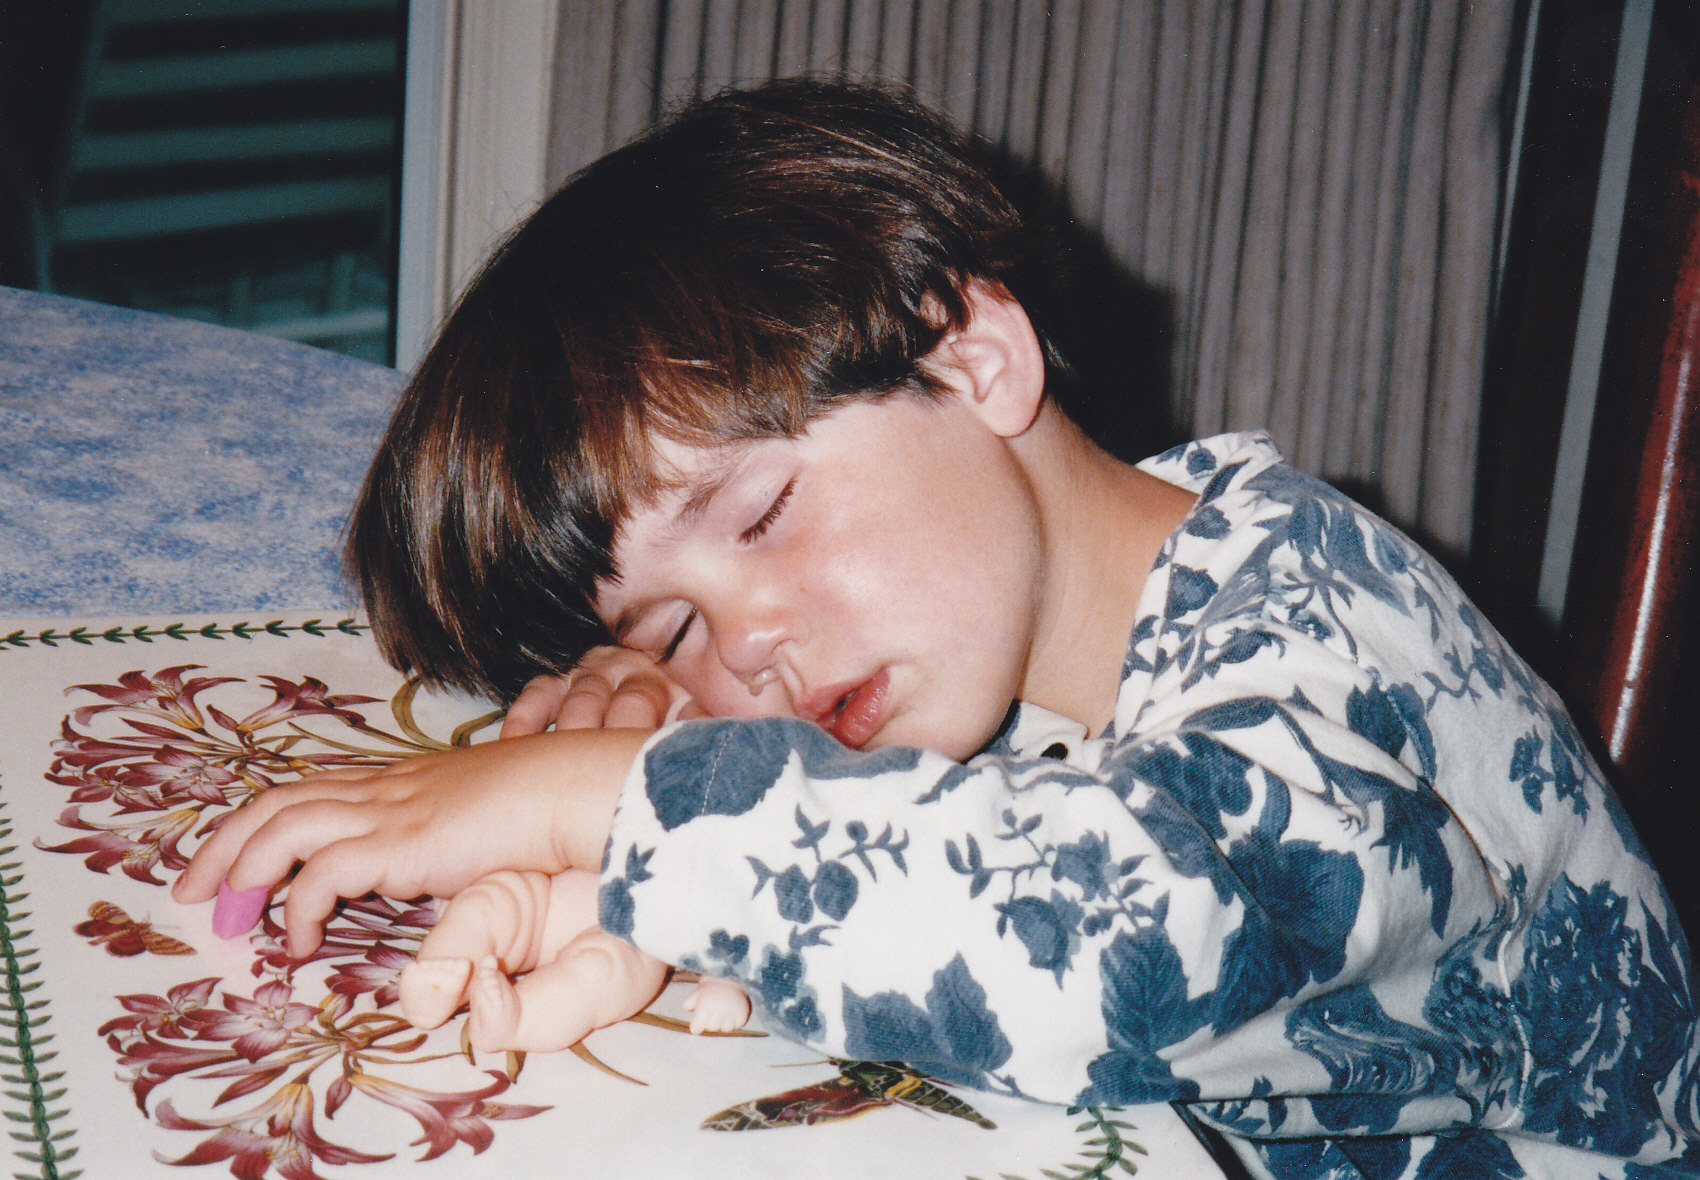 Little Sister demonstrates the perils of improper scheduling by falling asleep at the dinner table (circa 1996). I'm sure she got much better at sleep management in college.